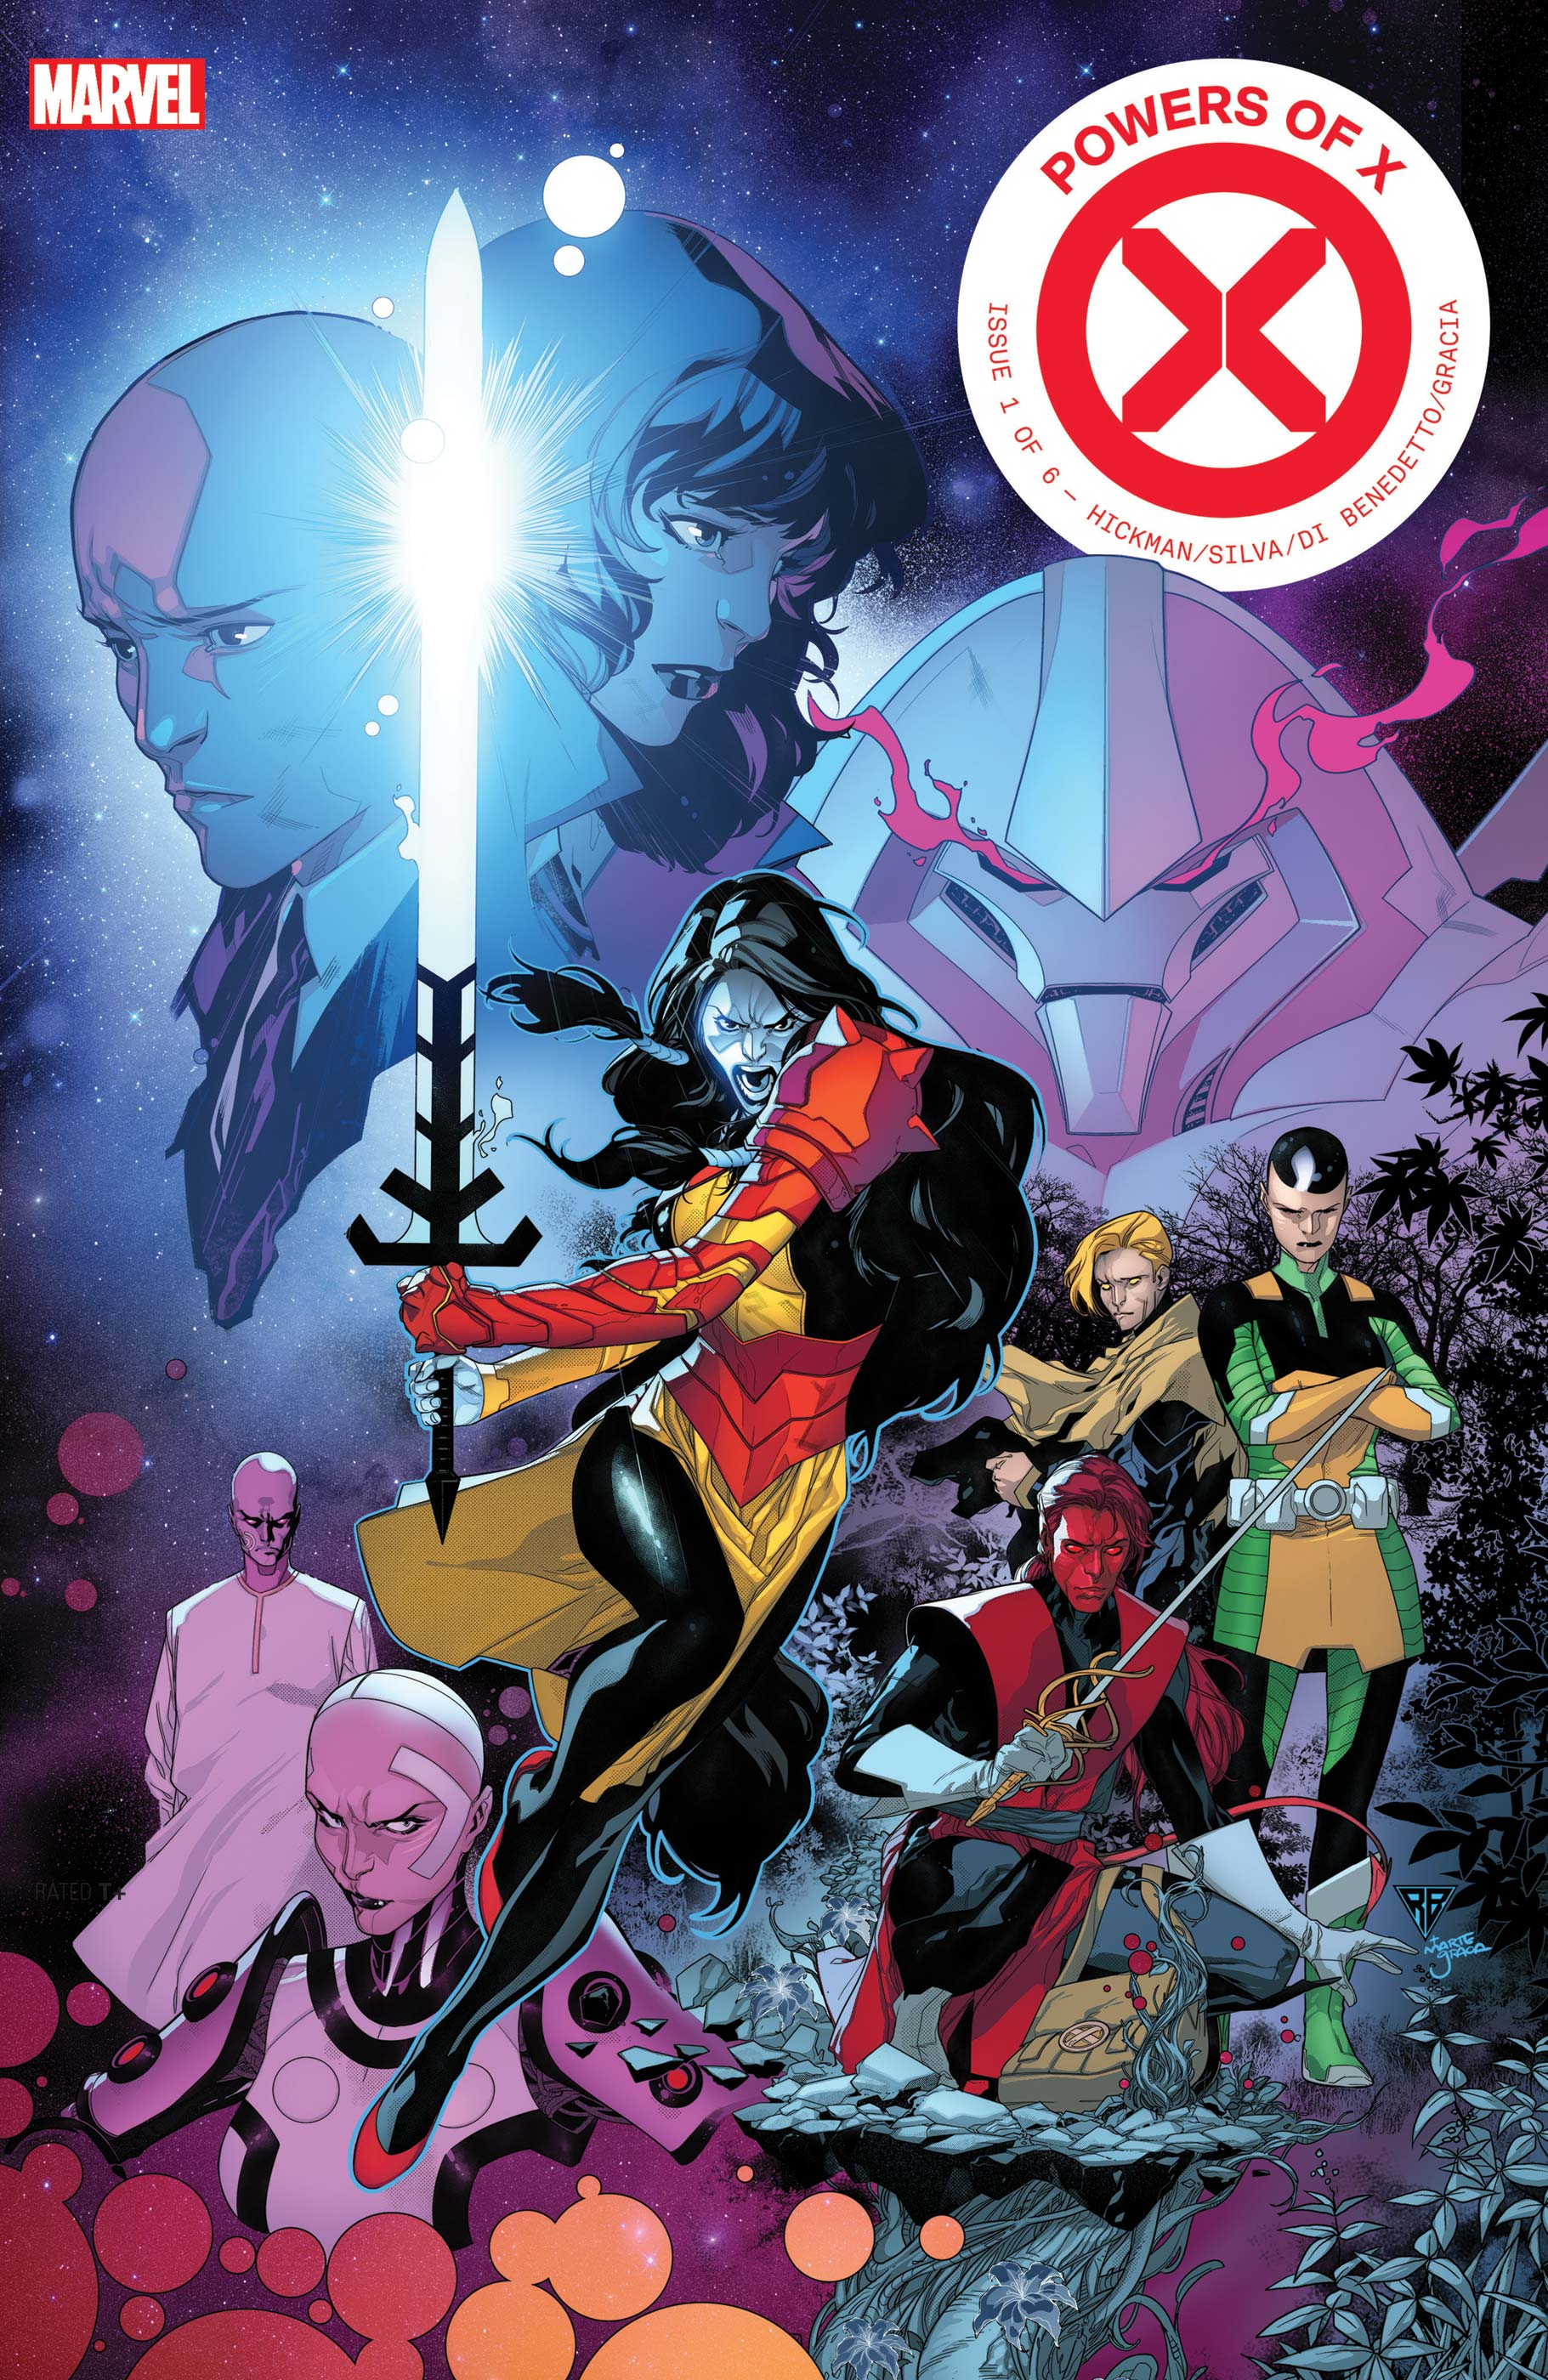 Powers of X #1 writes the X-Men a new history in an absolutely unexpected way